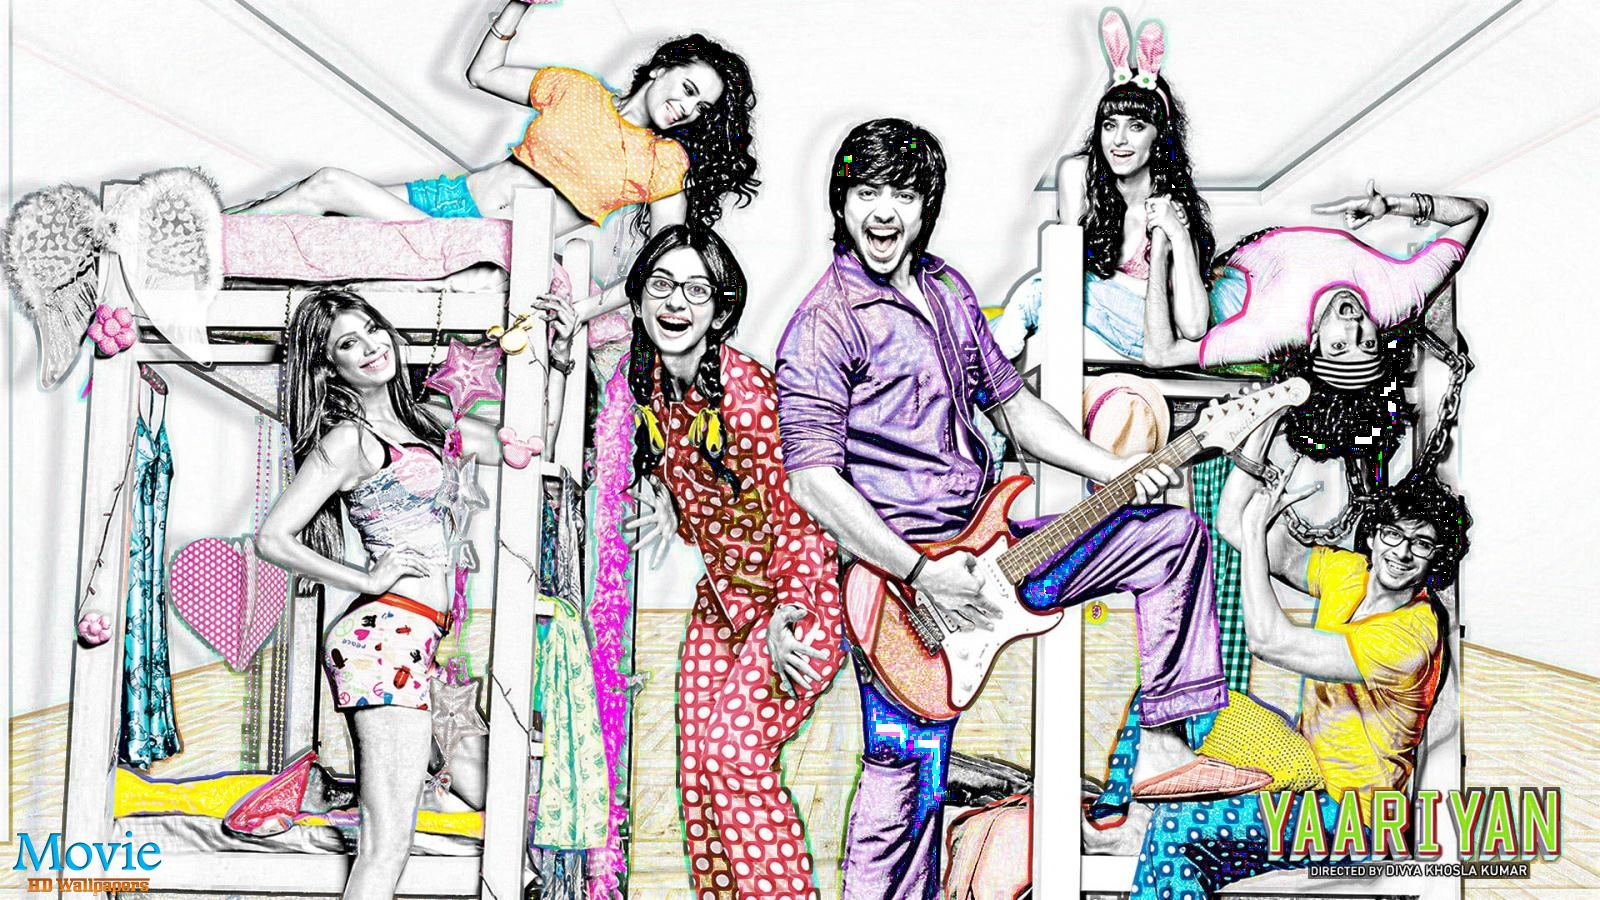 Hd wallpaper yaariyan - Yaariyan Poster